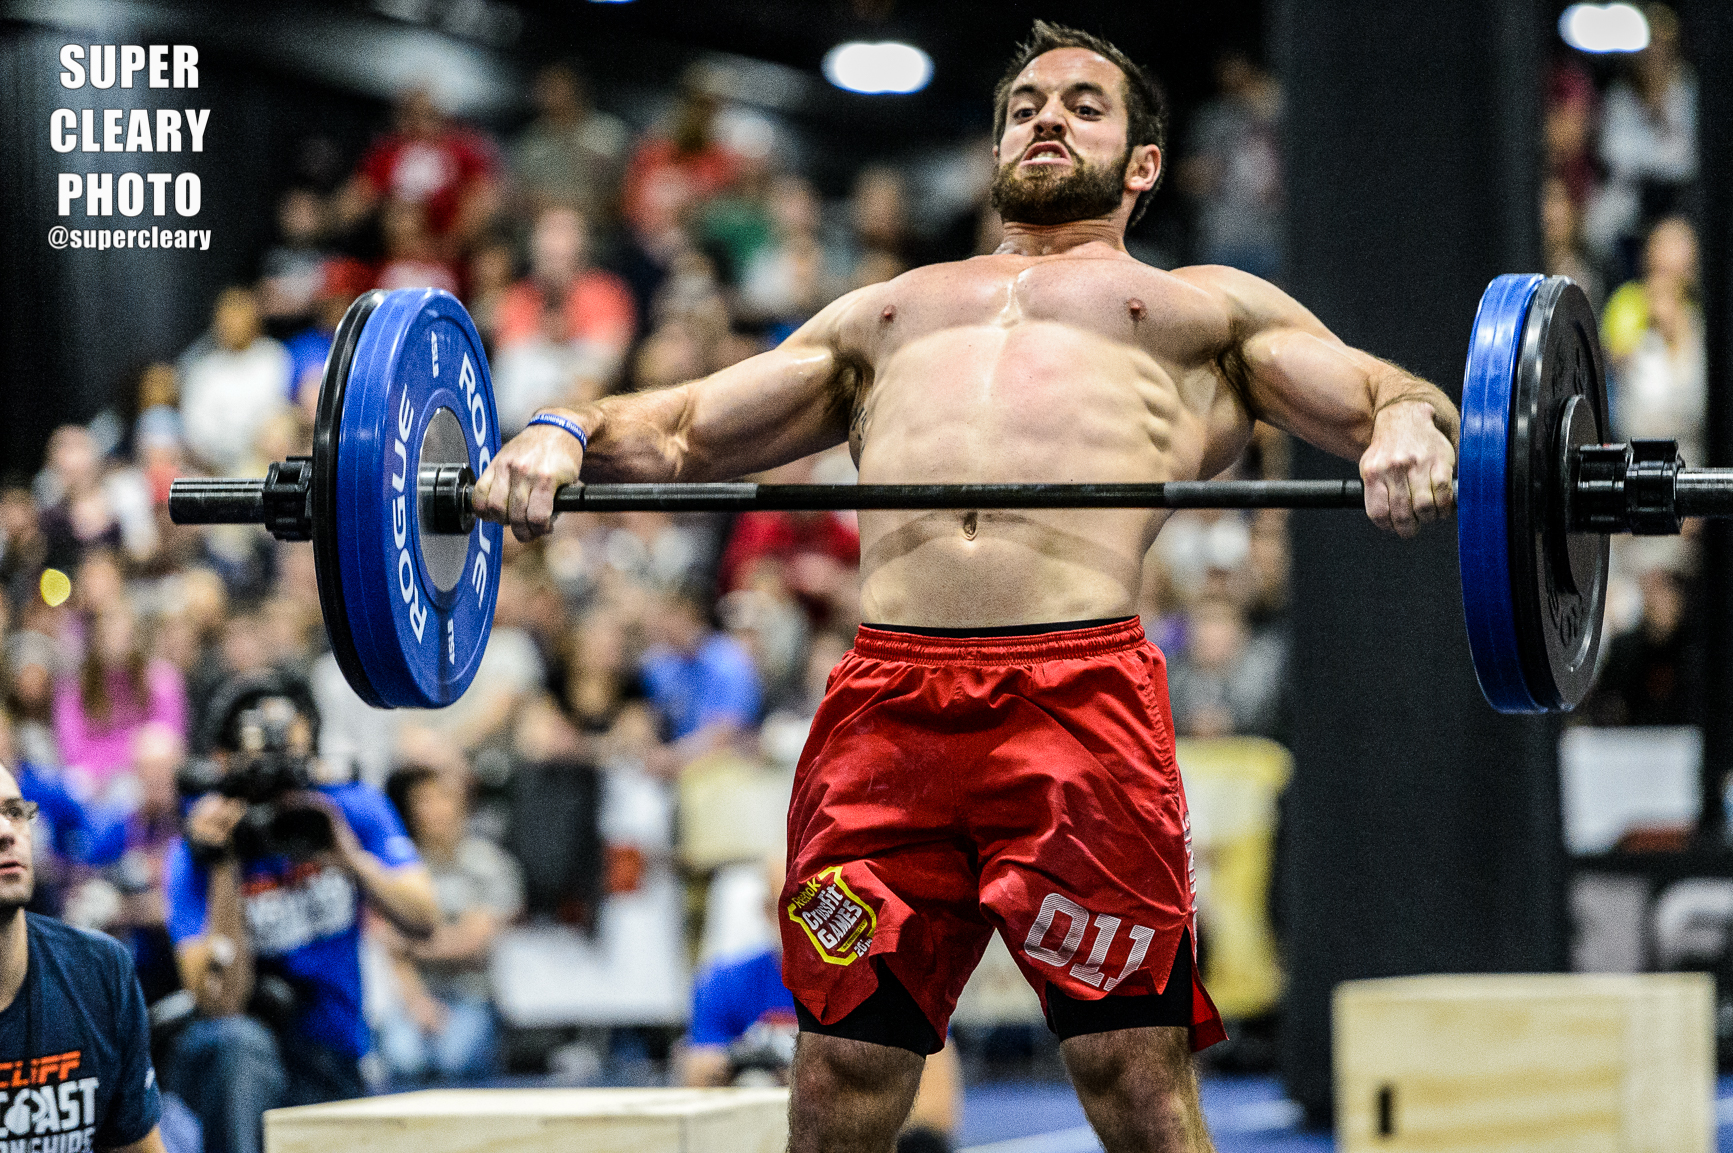 Rich Froning - Nikon D4, Sigma 120-300, 1/500th, F2.8, ISO 8000